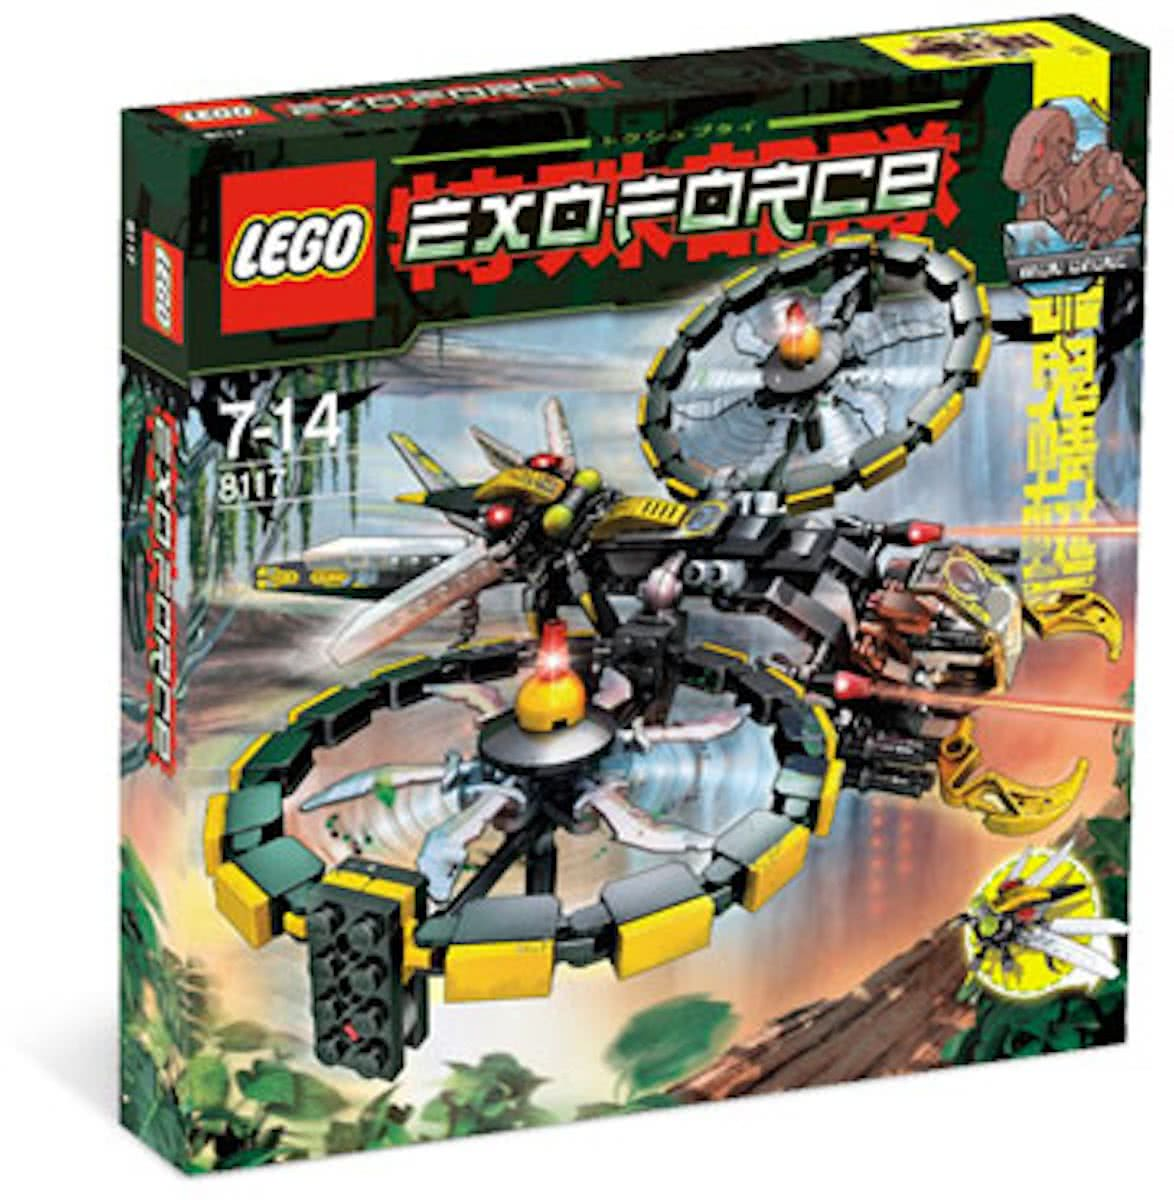 LEGO Exo-Force: Storm Lasher - 8117